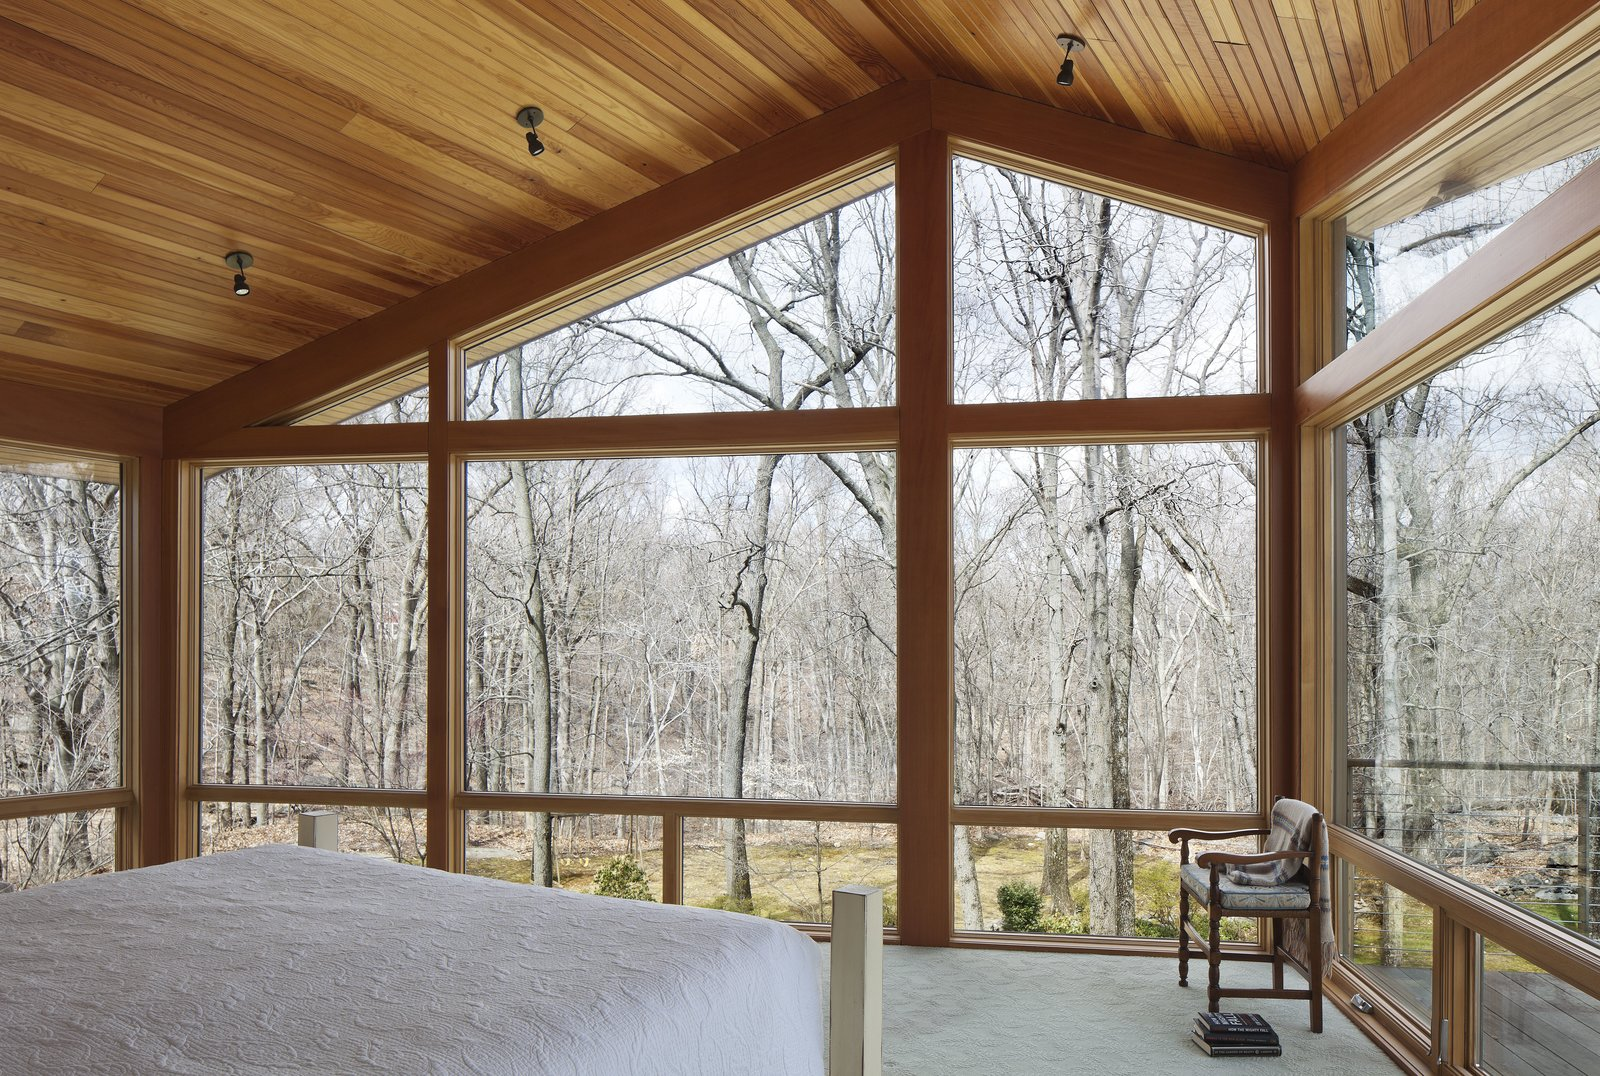 From the northeast corner of the master bedroom, the homeowners can walk out onto a deck area to enjoy the view of the woods.  Bedroom by David Seah from After a Fire, a Midcentury Home Rises from the Ashes